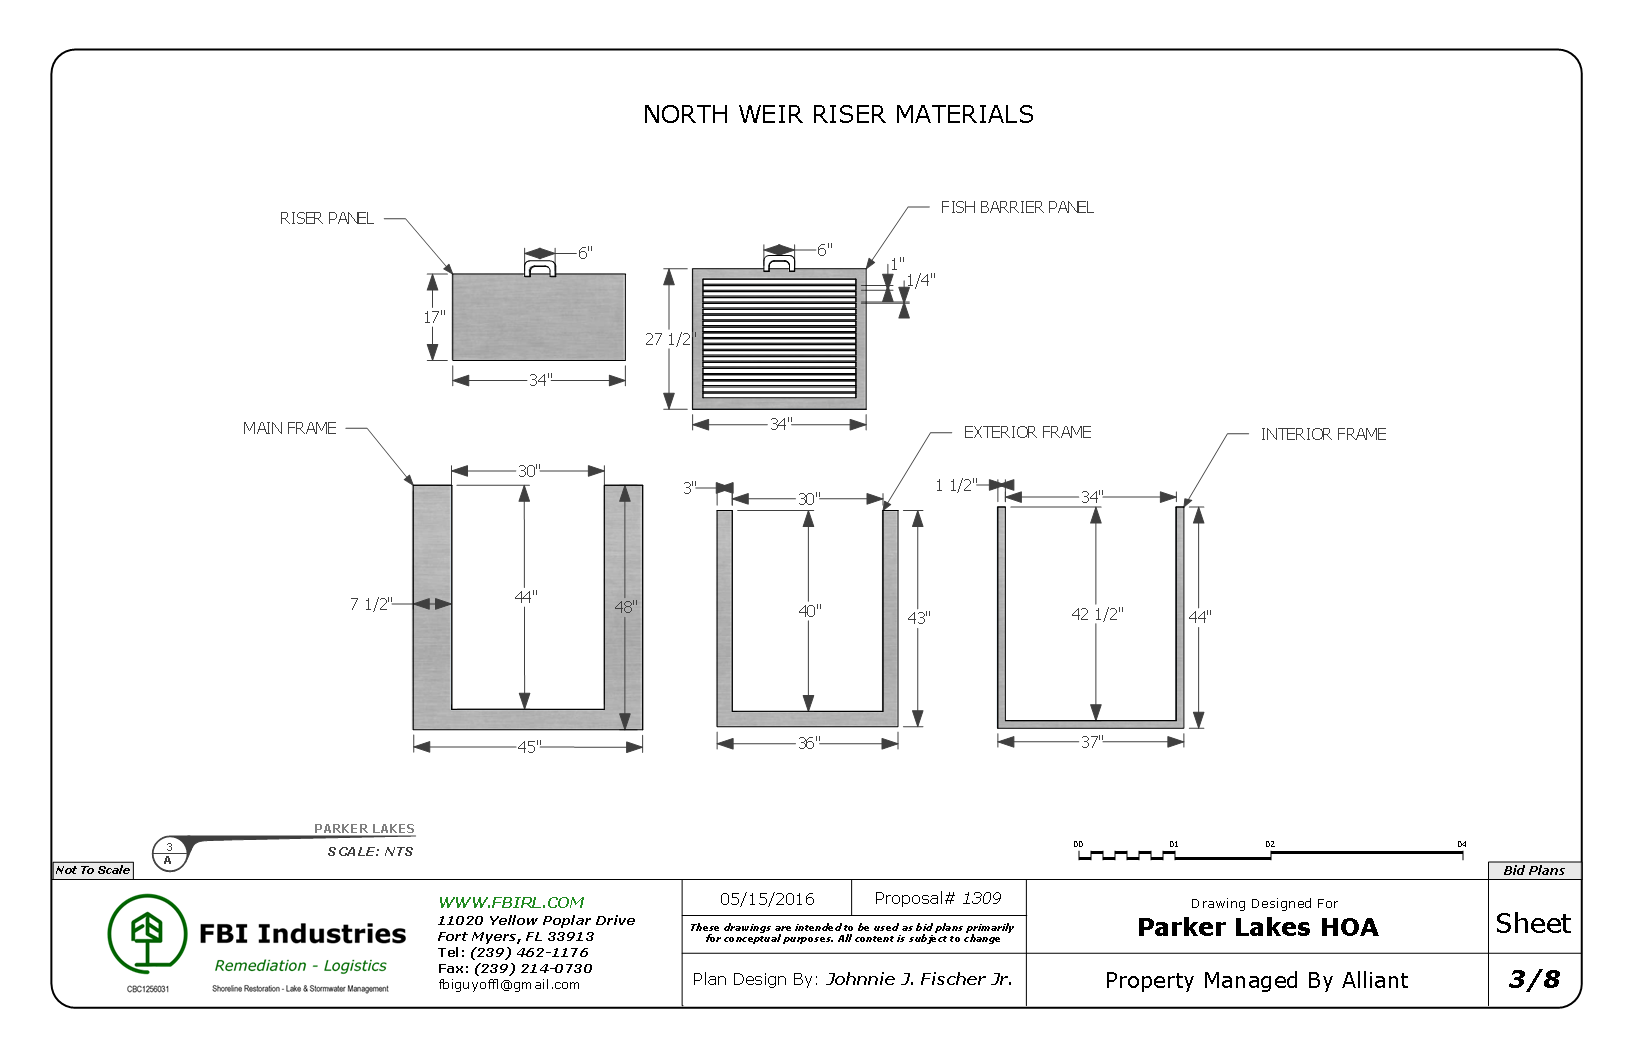 Proposal#1309_Parker Lakes Weir Presentation_Photos_3.png